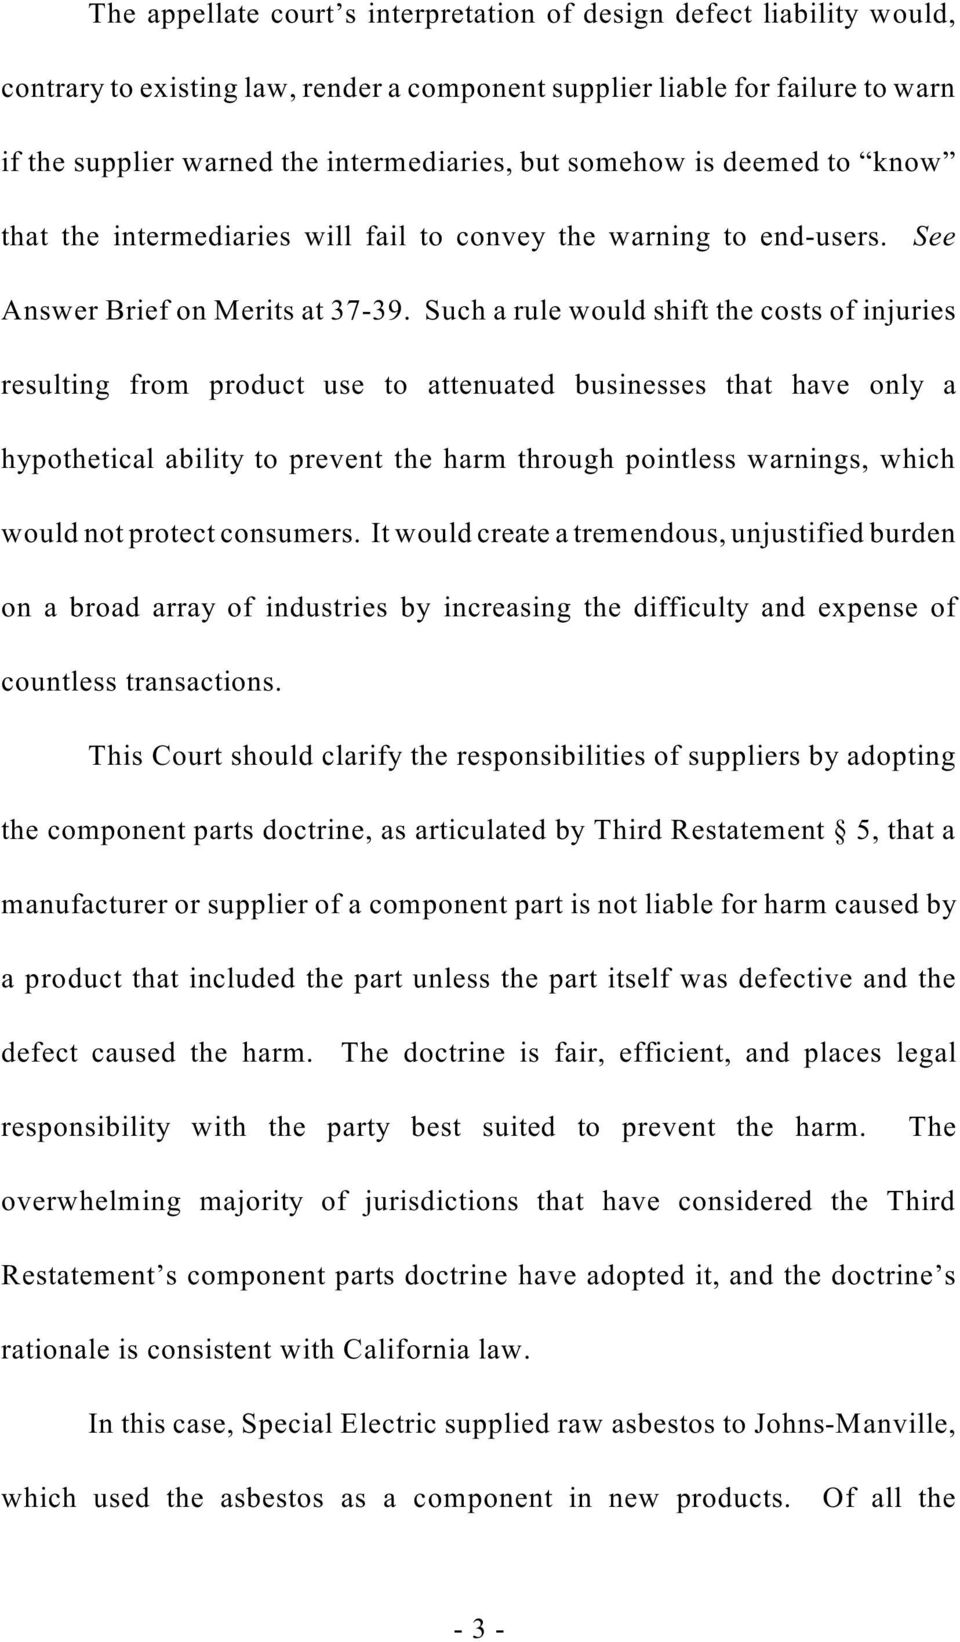 Such a rule would shift the costs of injuries resulting from product use to attenuated businesses that have only a hypothetical ability to prevent the harm through pointless warnings, which would not